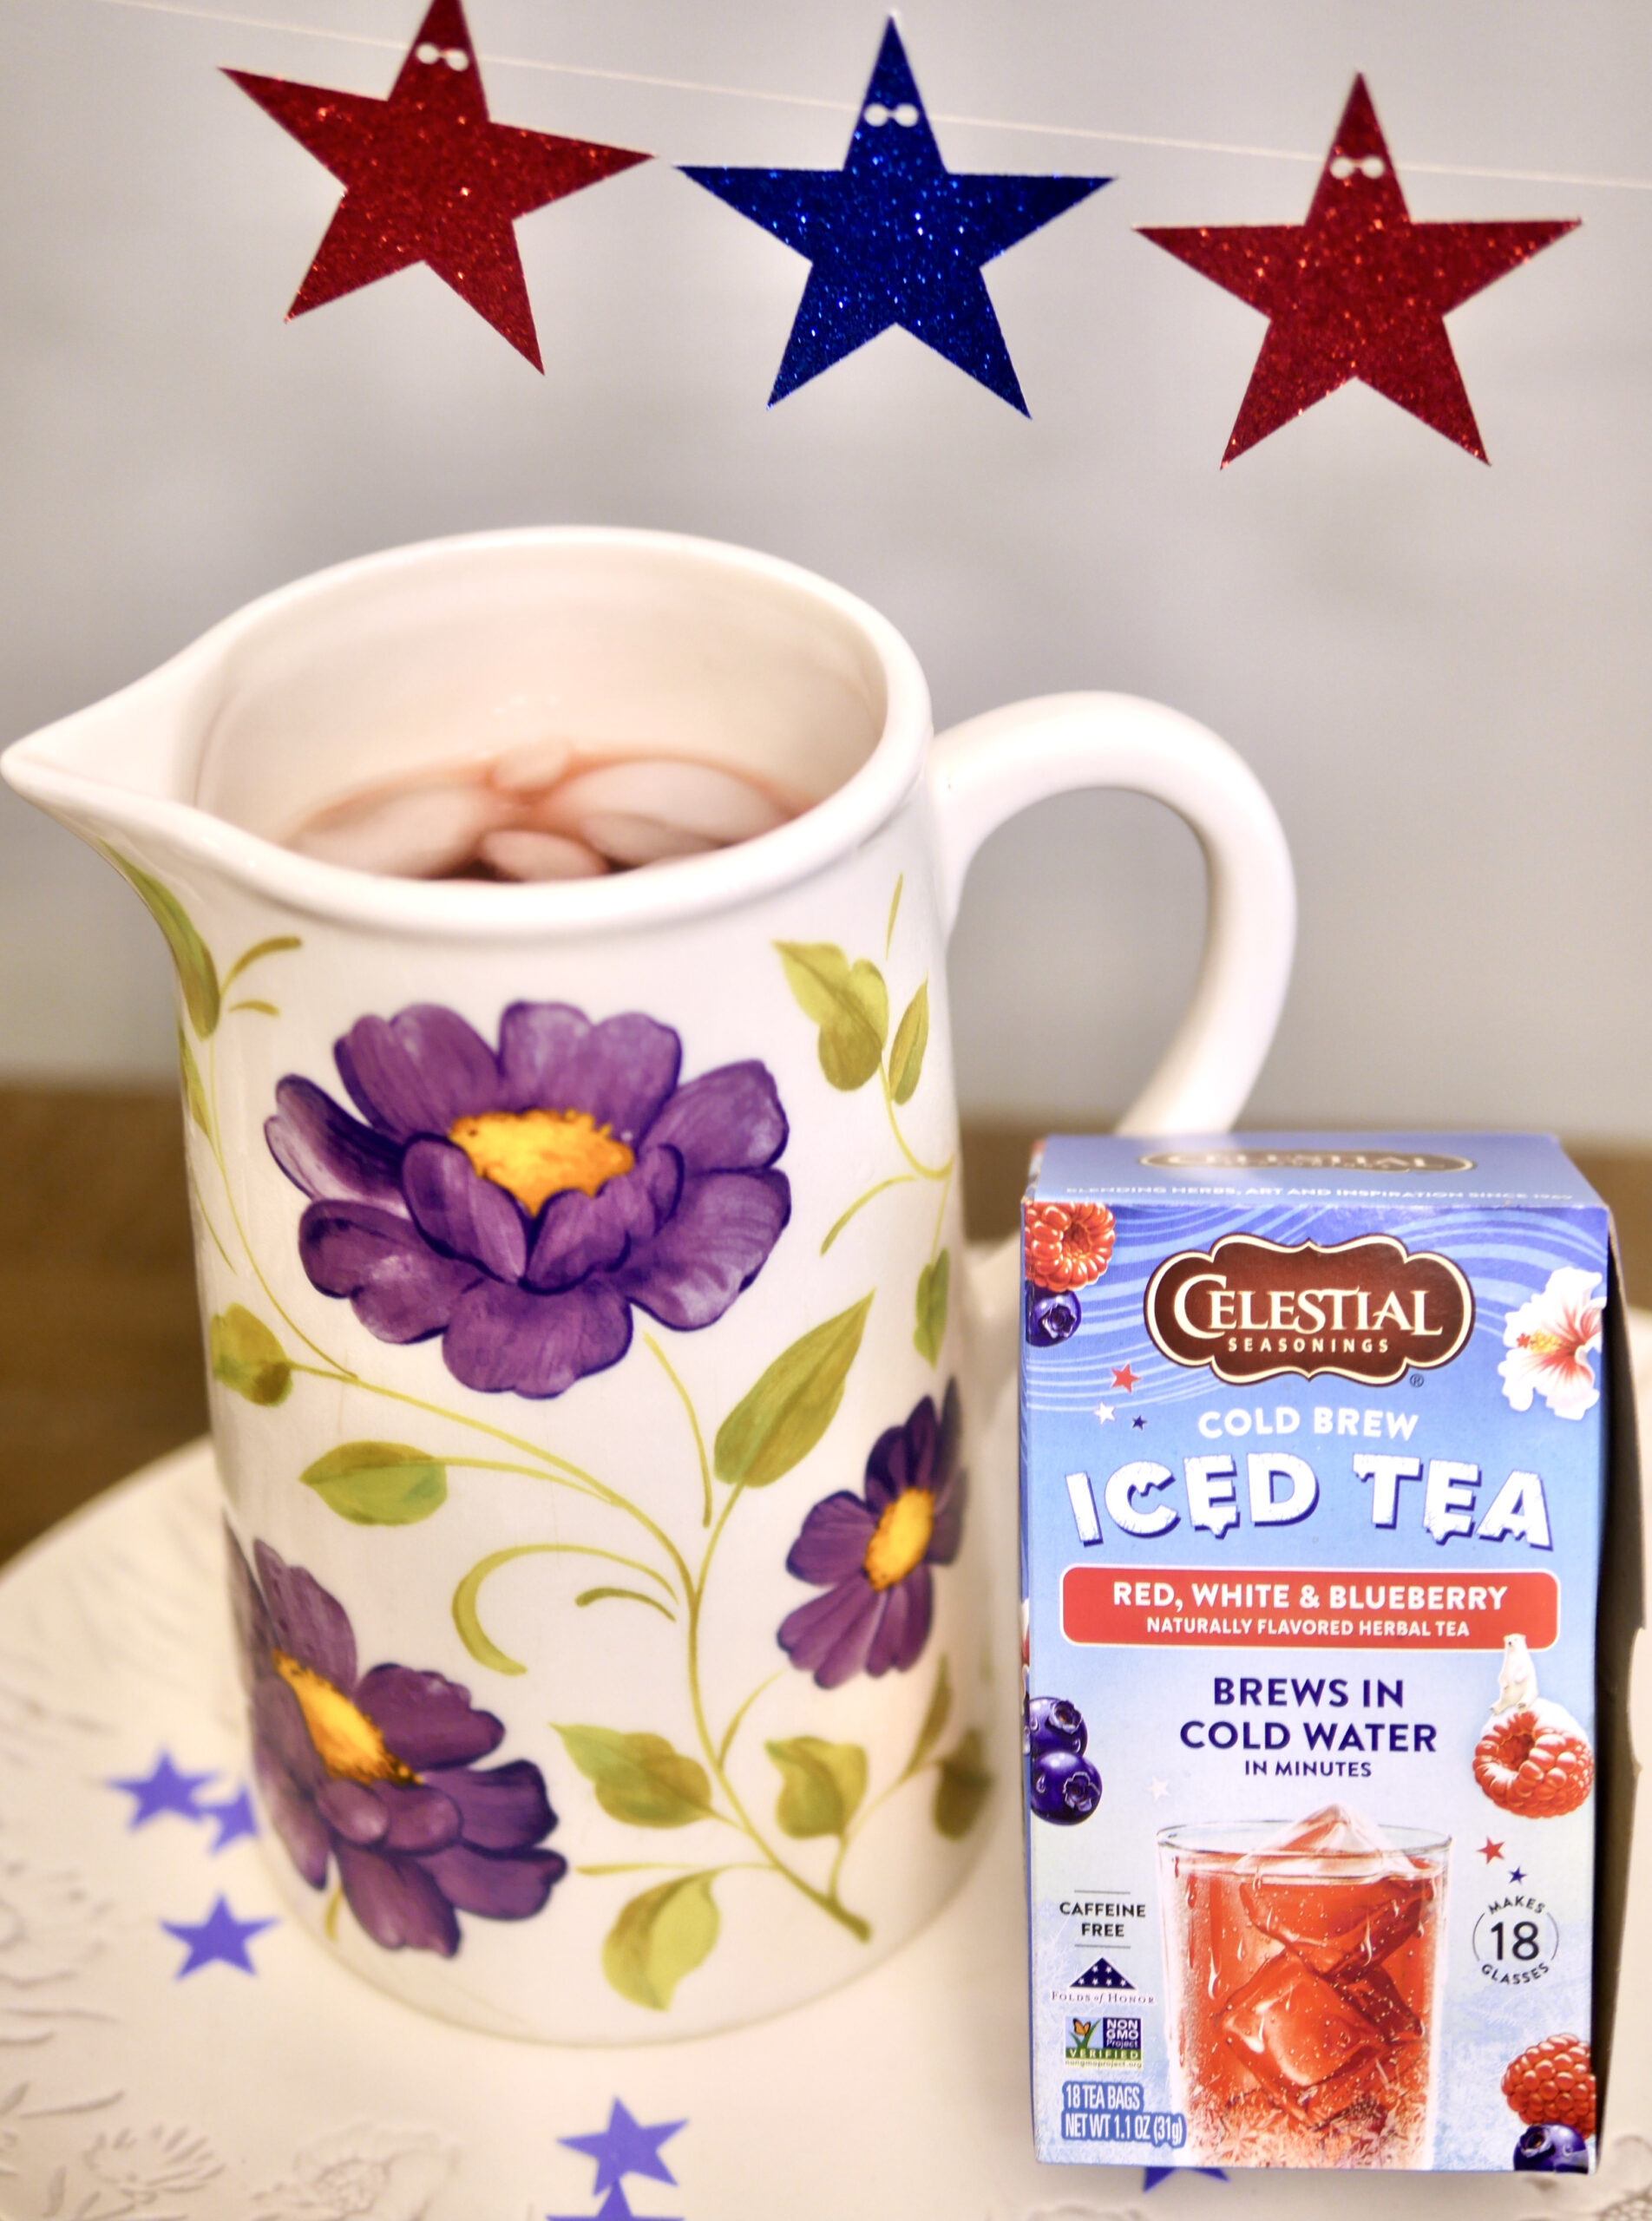 Celestial Seasonings Cold Brew Red, White, and Blueberry